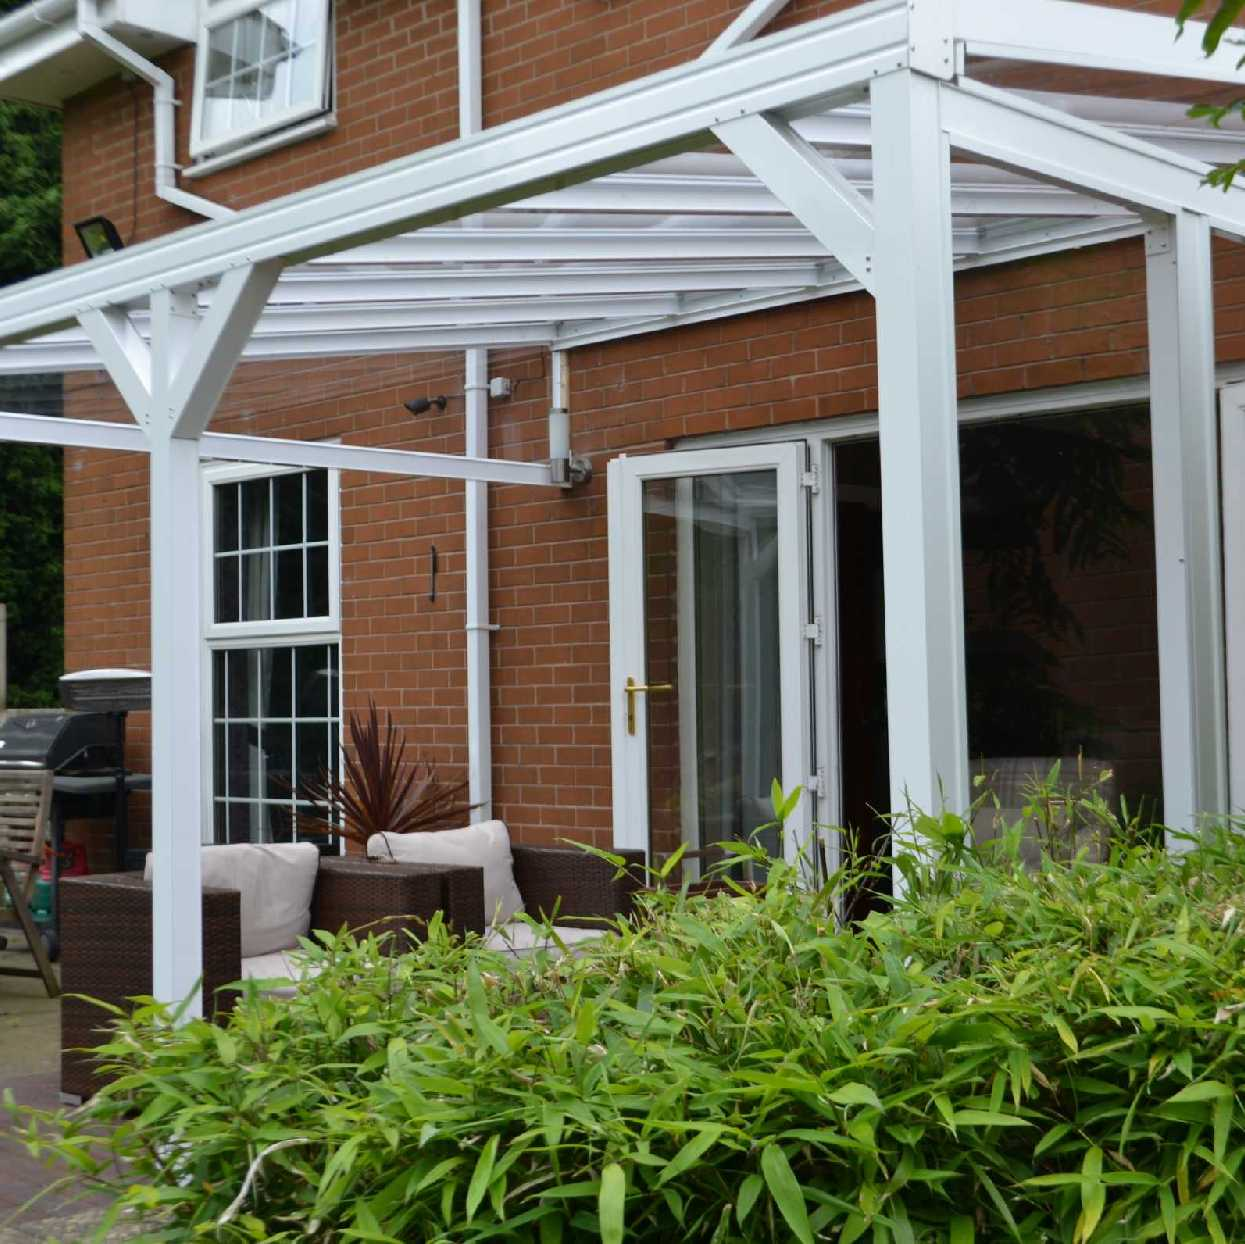 Omega Smart White Lean-To Canopy with 6mm Glass Clear Plate Polycarbonate Glazing - 7.0m (W) x 1.5m (P), (4) Supporting Posts from Omega Build